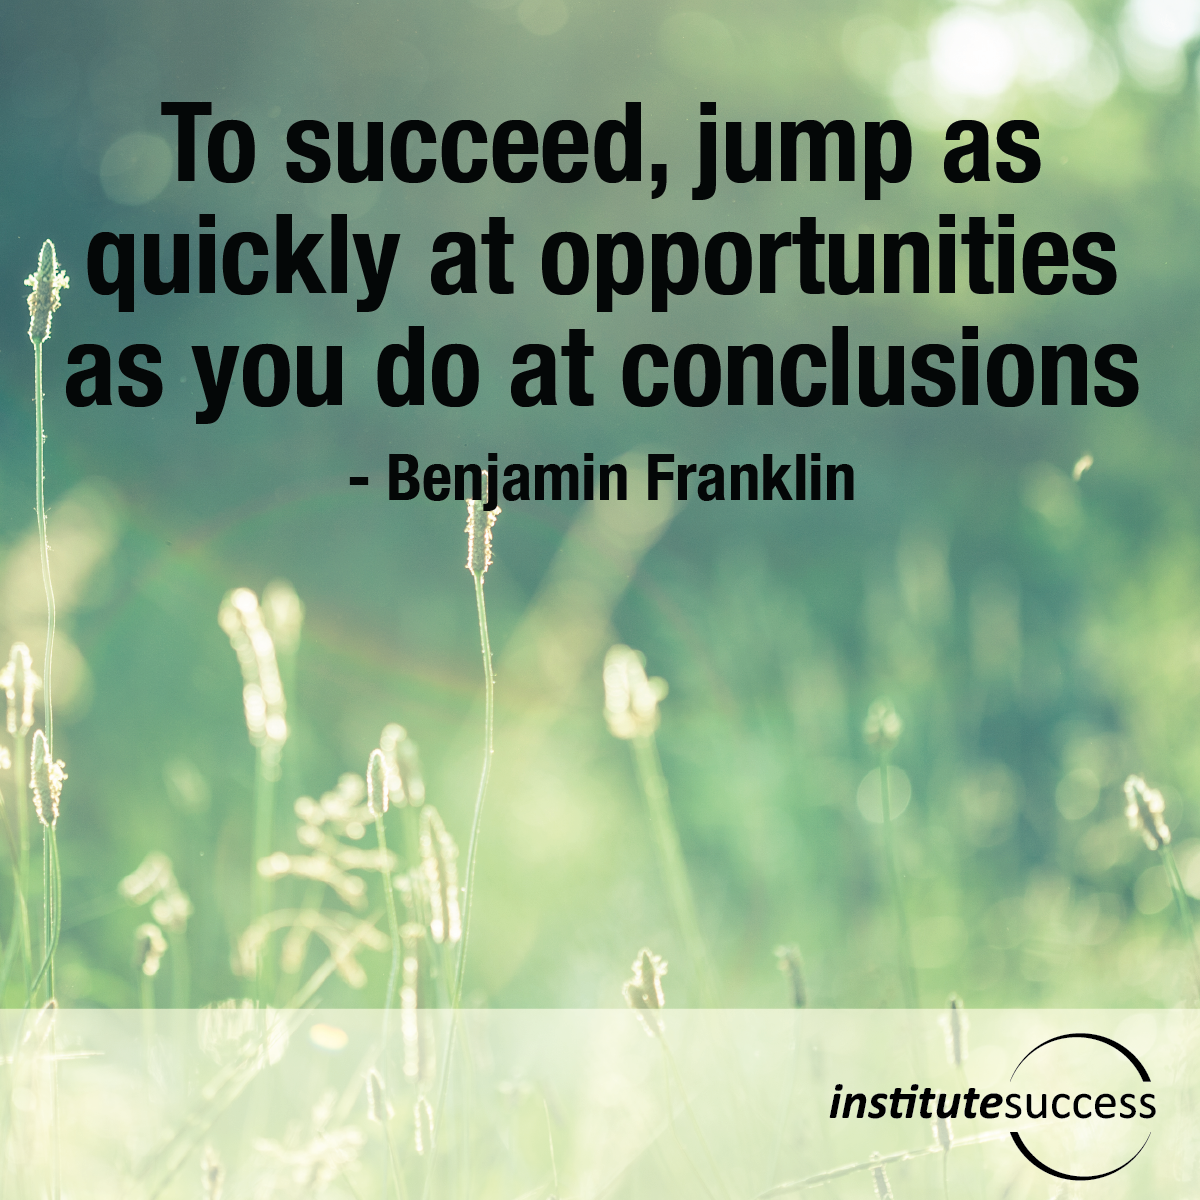 Jumping To Conclusions Quotes: To Succeed, Jump As Quickly At Opportunities As You Do At